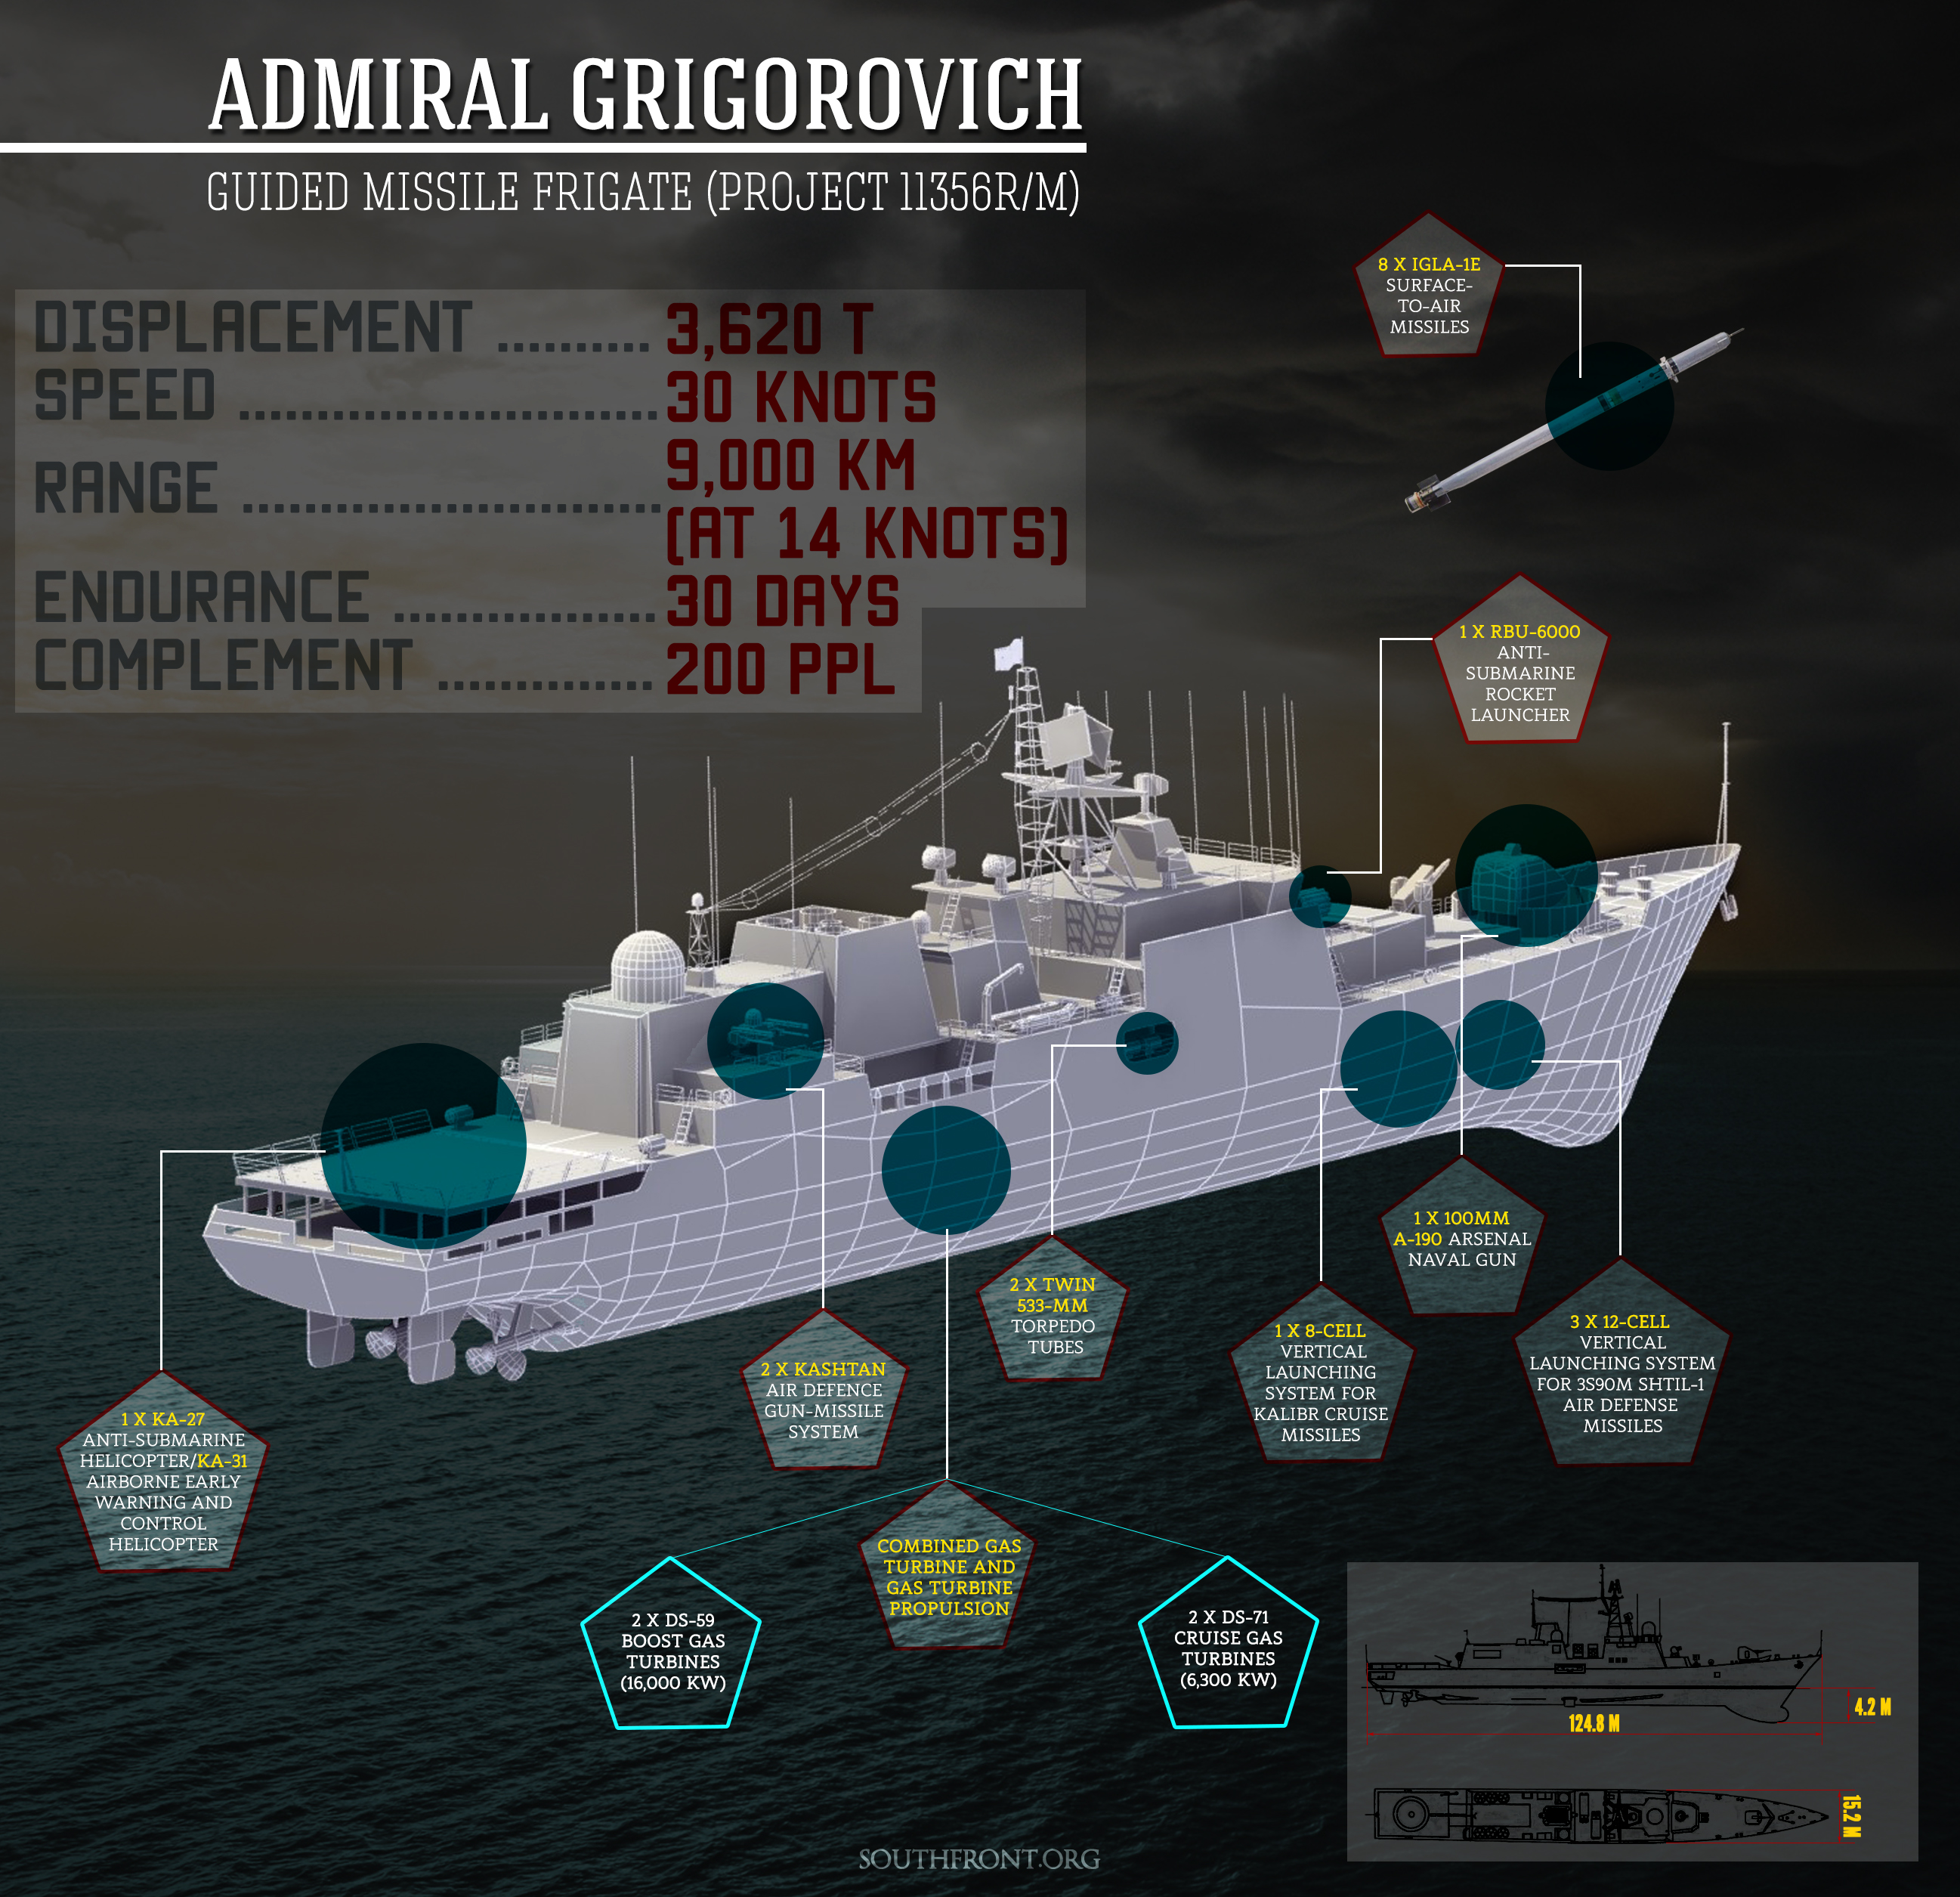 Admiral Grigorovich Frigate to Join Russian Navy Ships in Mediterranean Sea